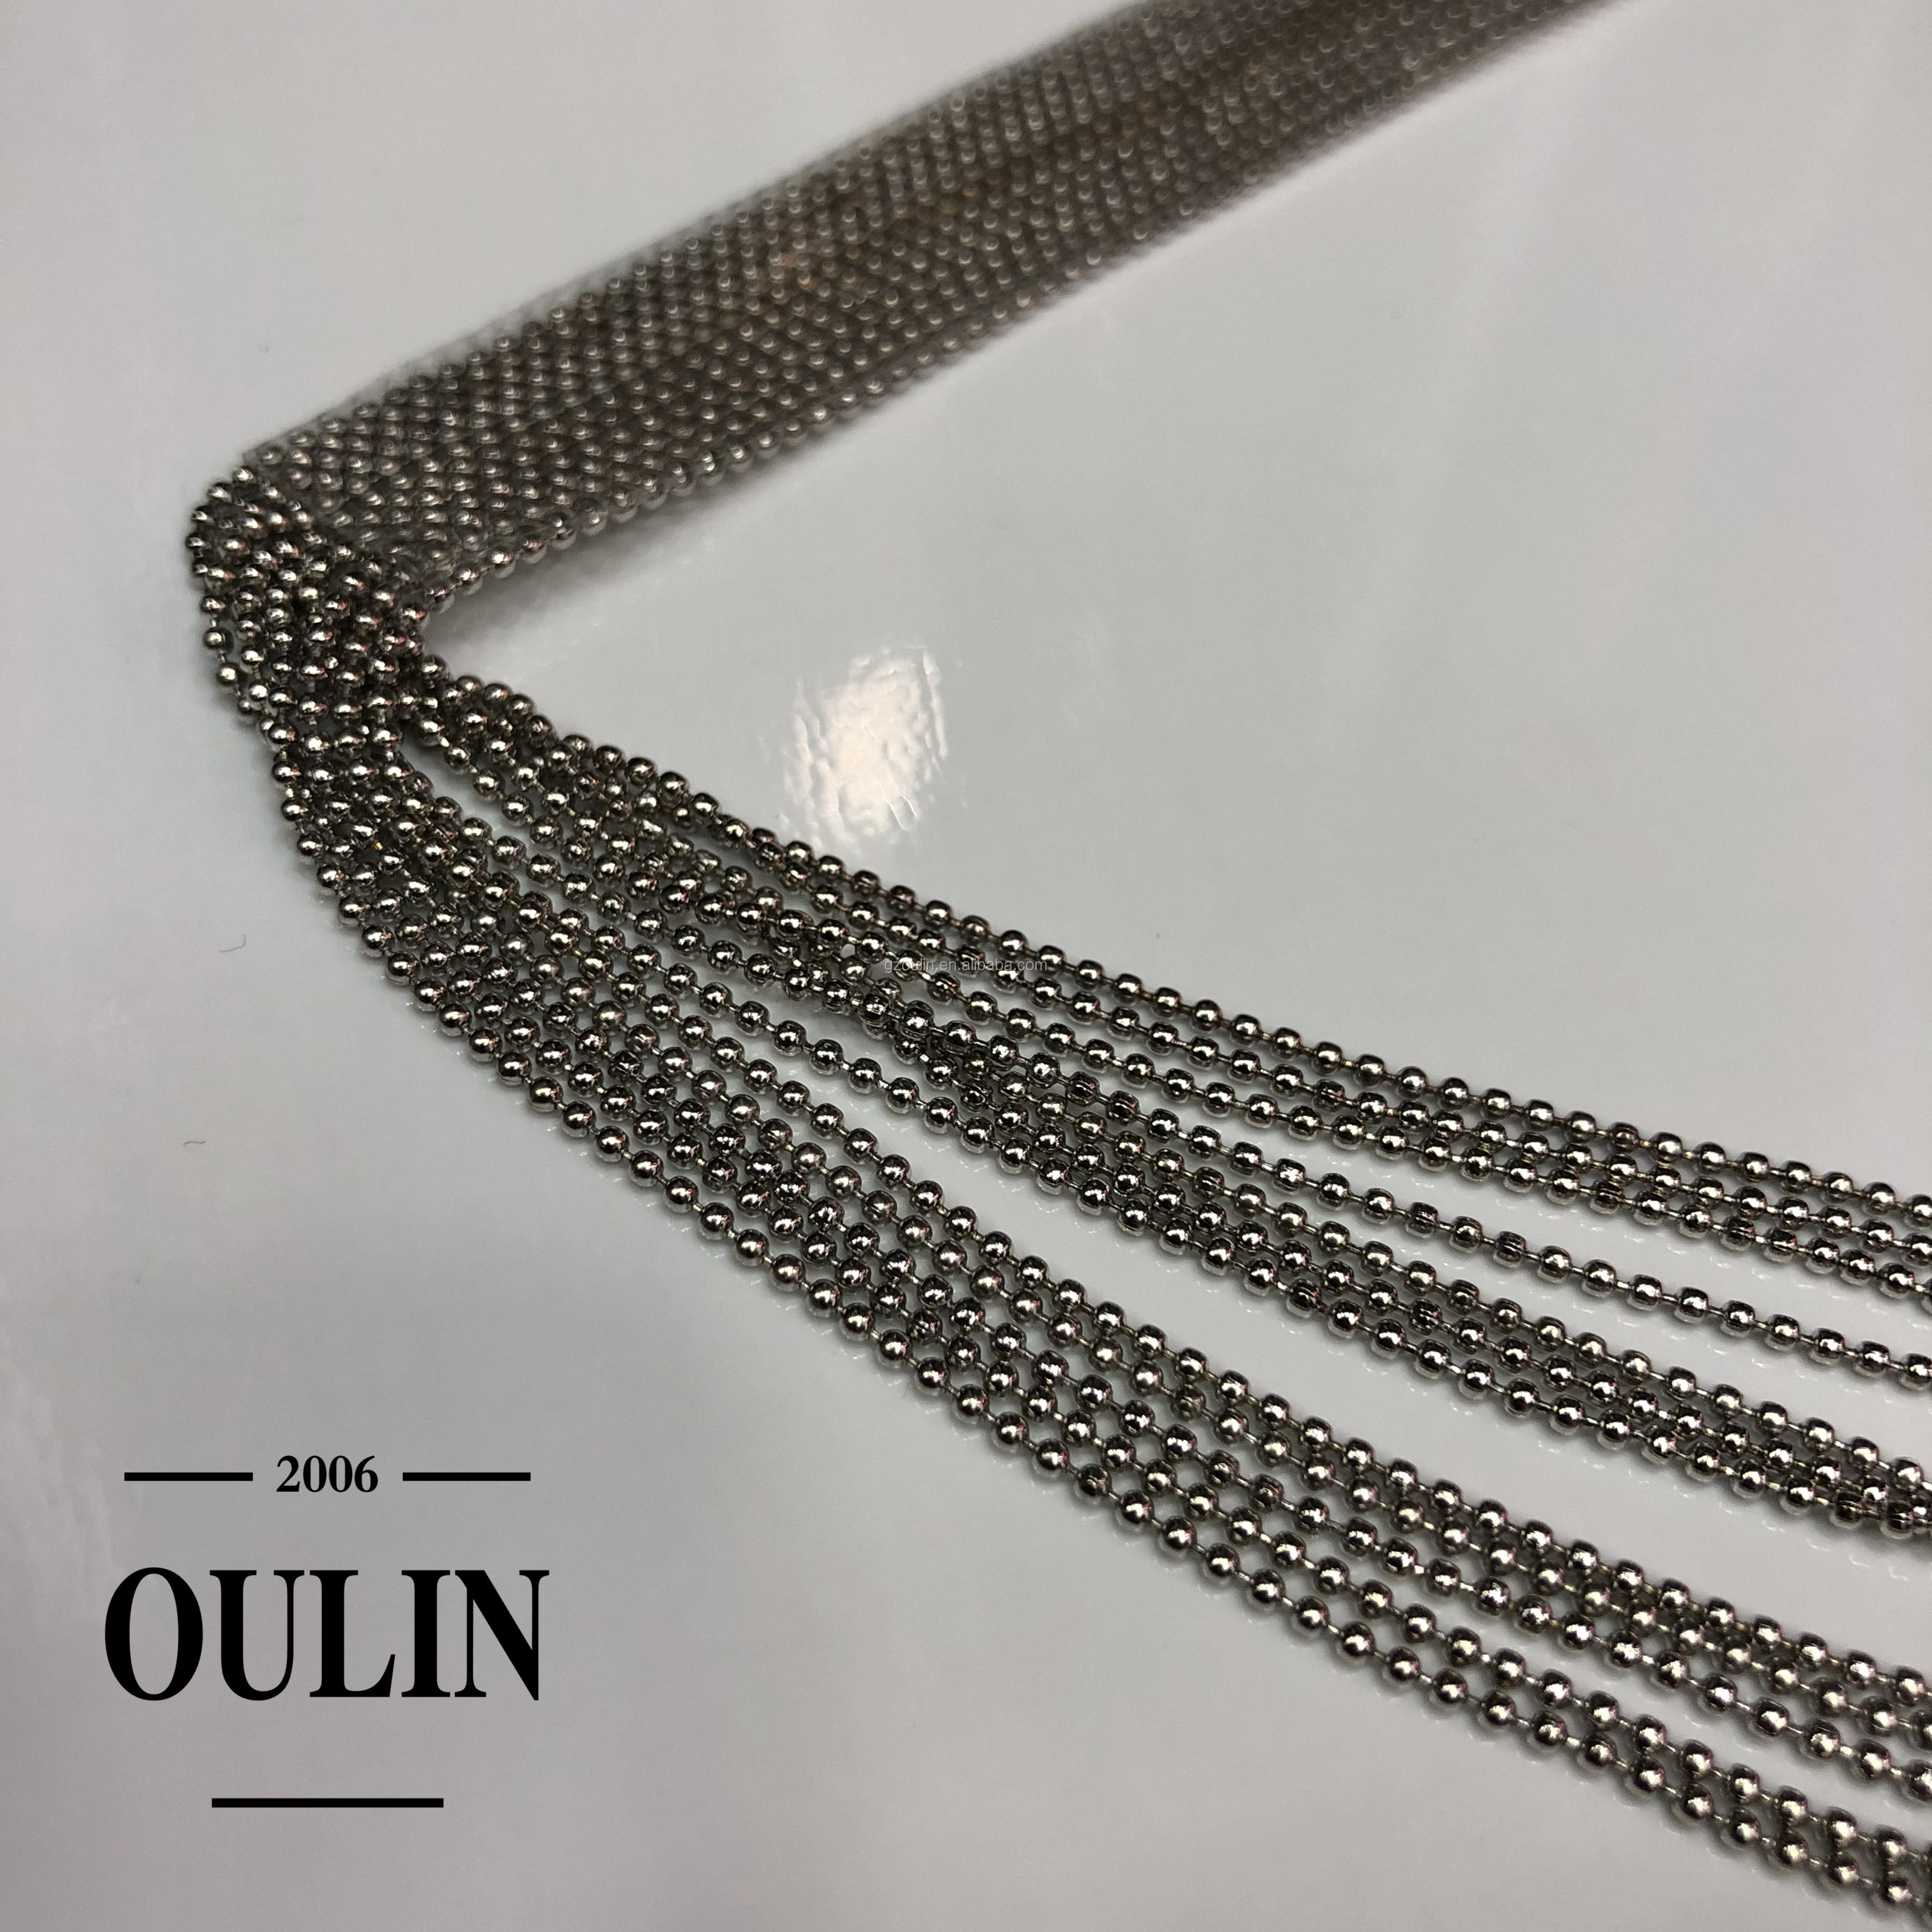 2019 new coming designs ball chain fringes can be customized any other sizes ball chain tassels garment accessory